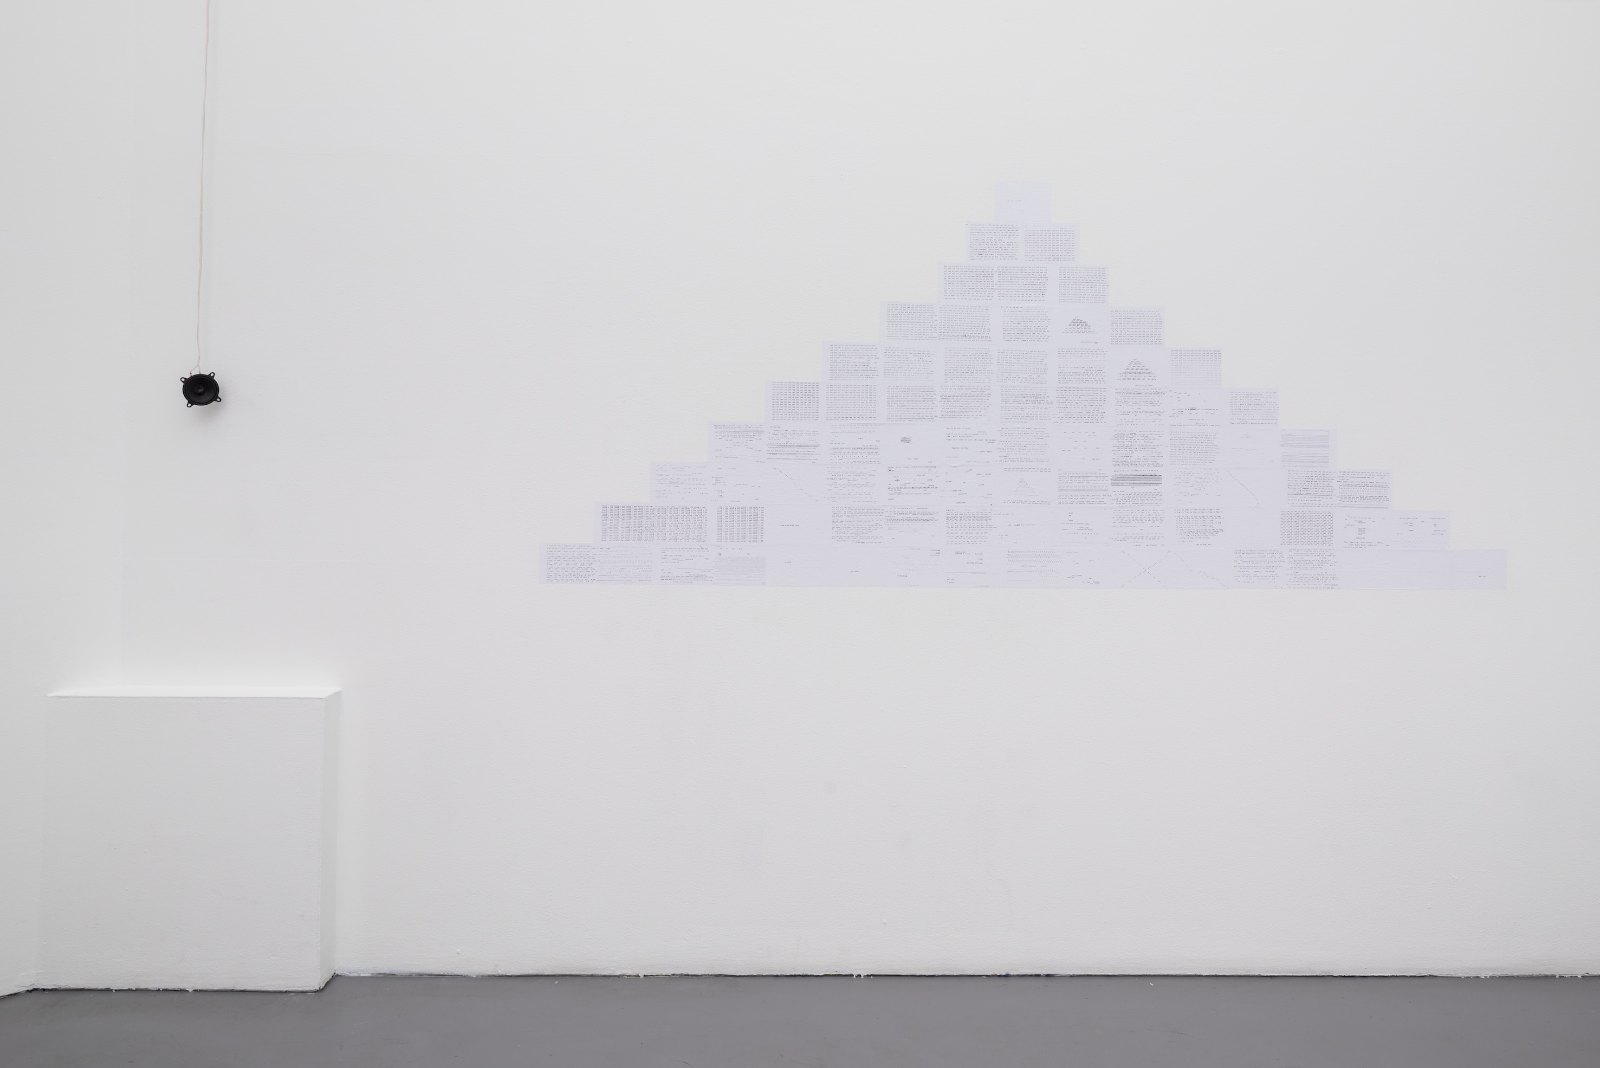 Marie Raffn, And an ant and. And an aunt and., 2014. Wallpaper text, sound loop, 230 x 85 cm